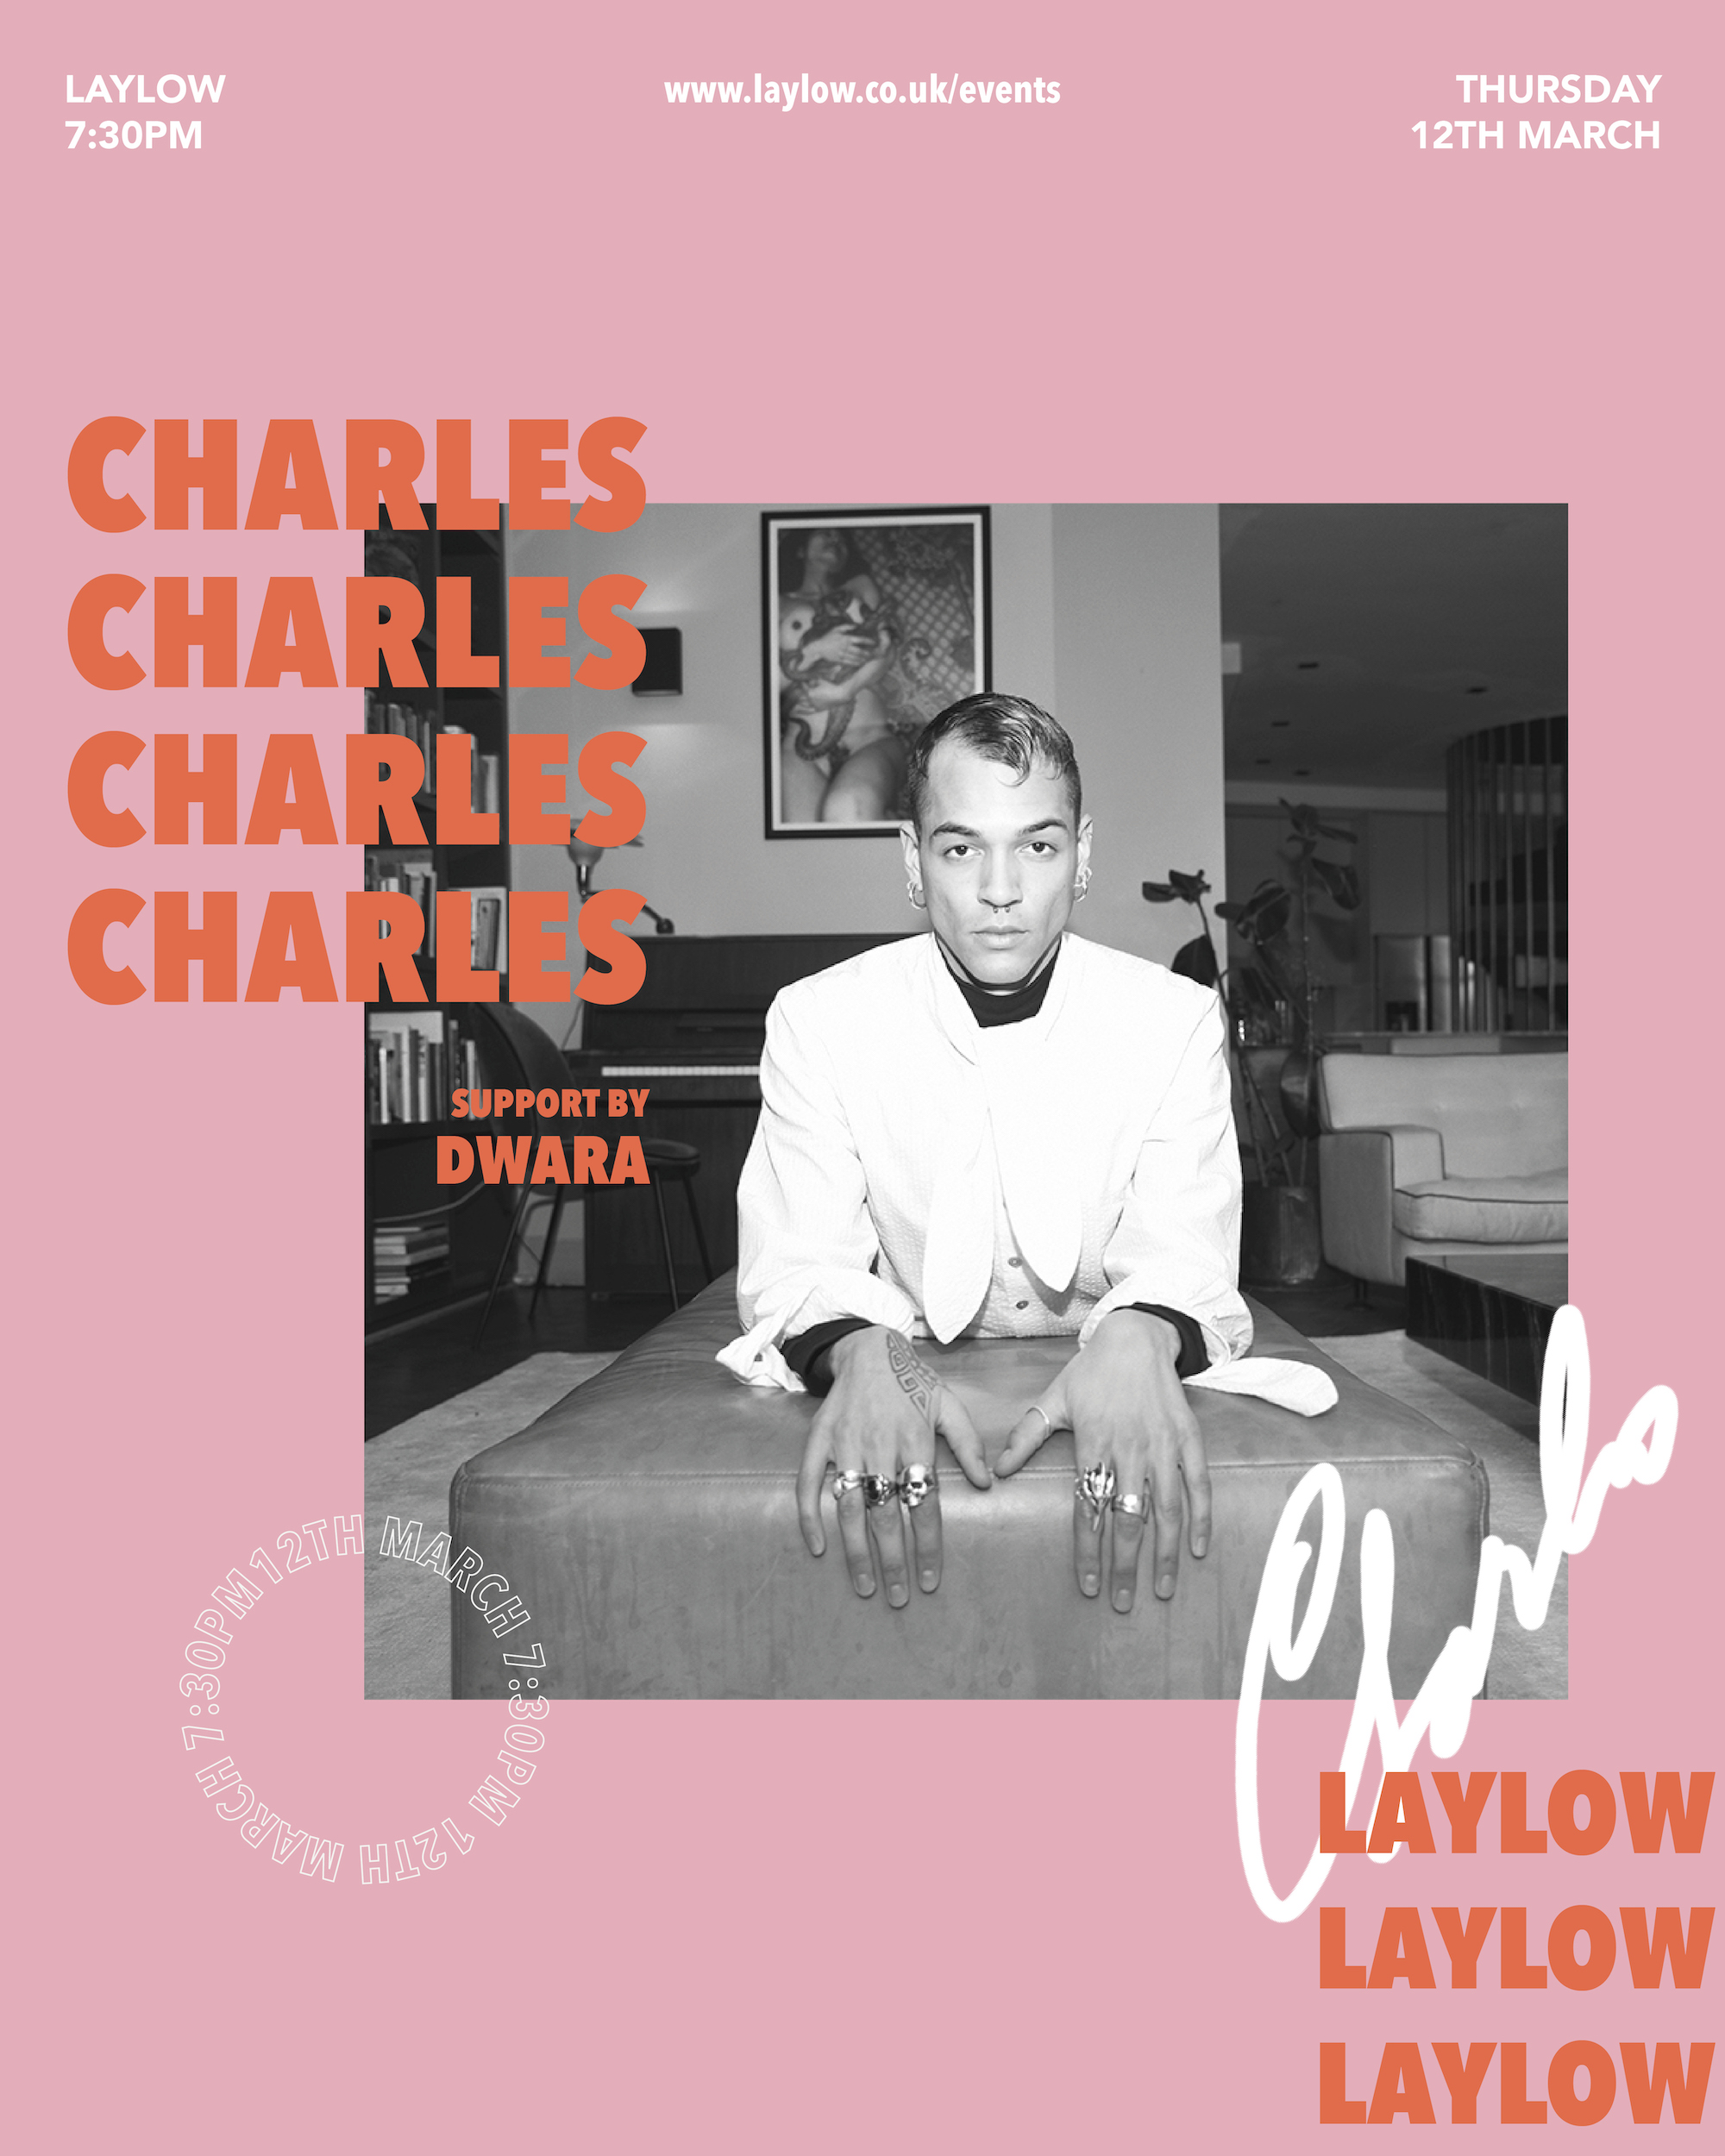 Laylow Presents: Charles